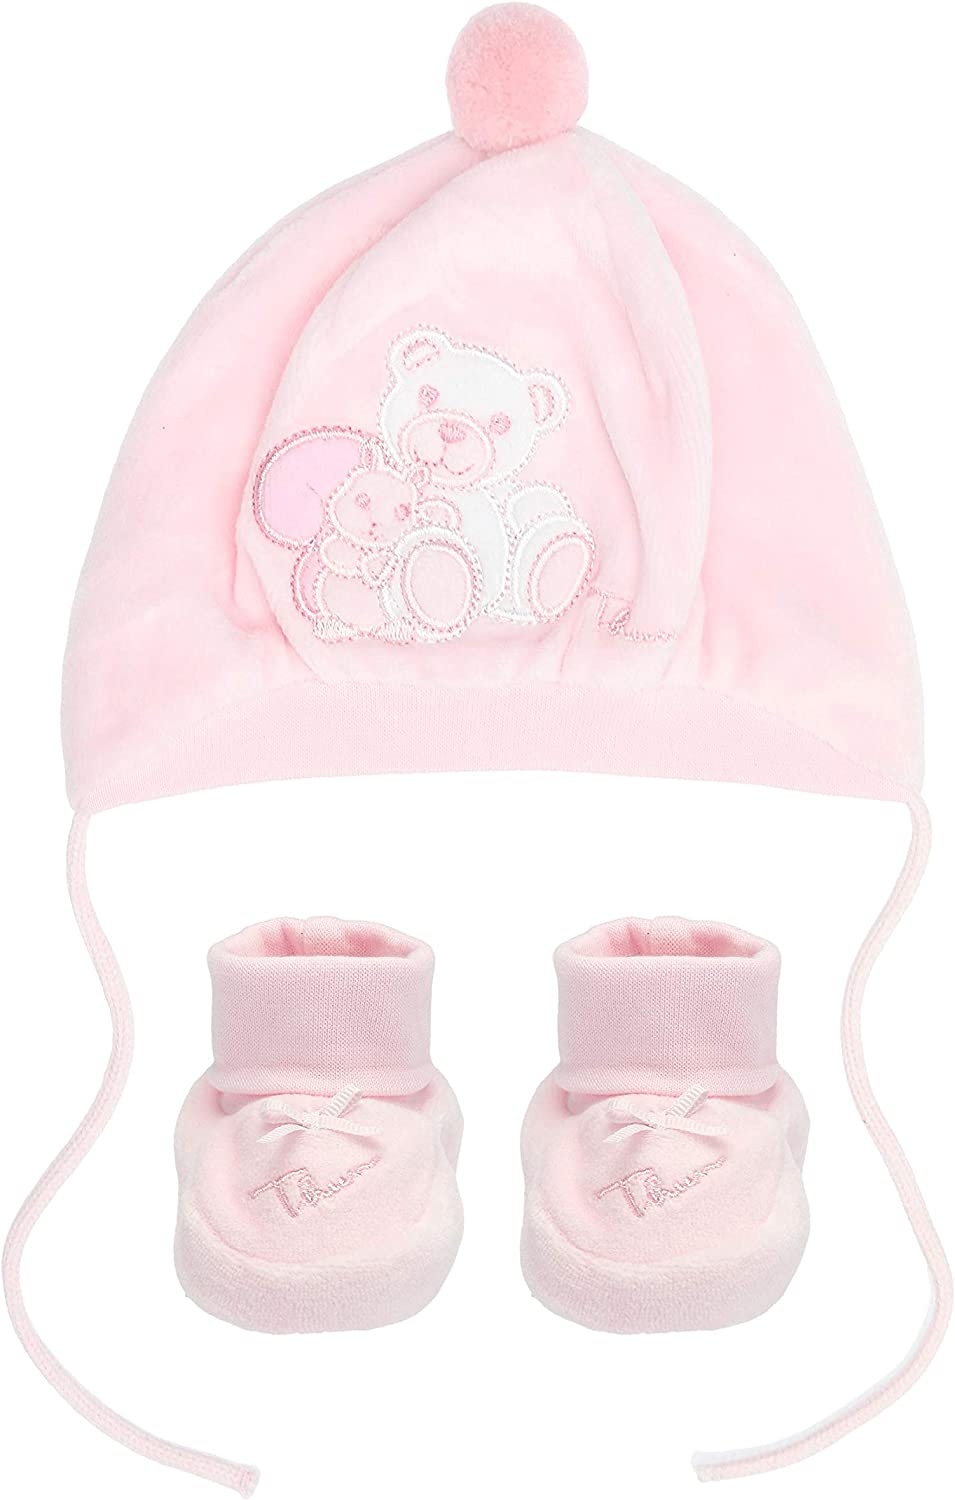 Thun Pink Hat And Shoes Thun Ovs In Chenille Little Friends Amazon Co Uk Baby